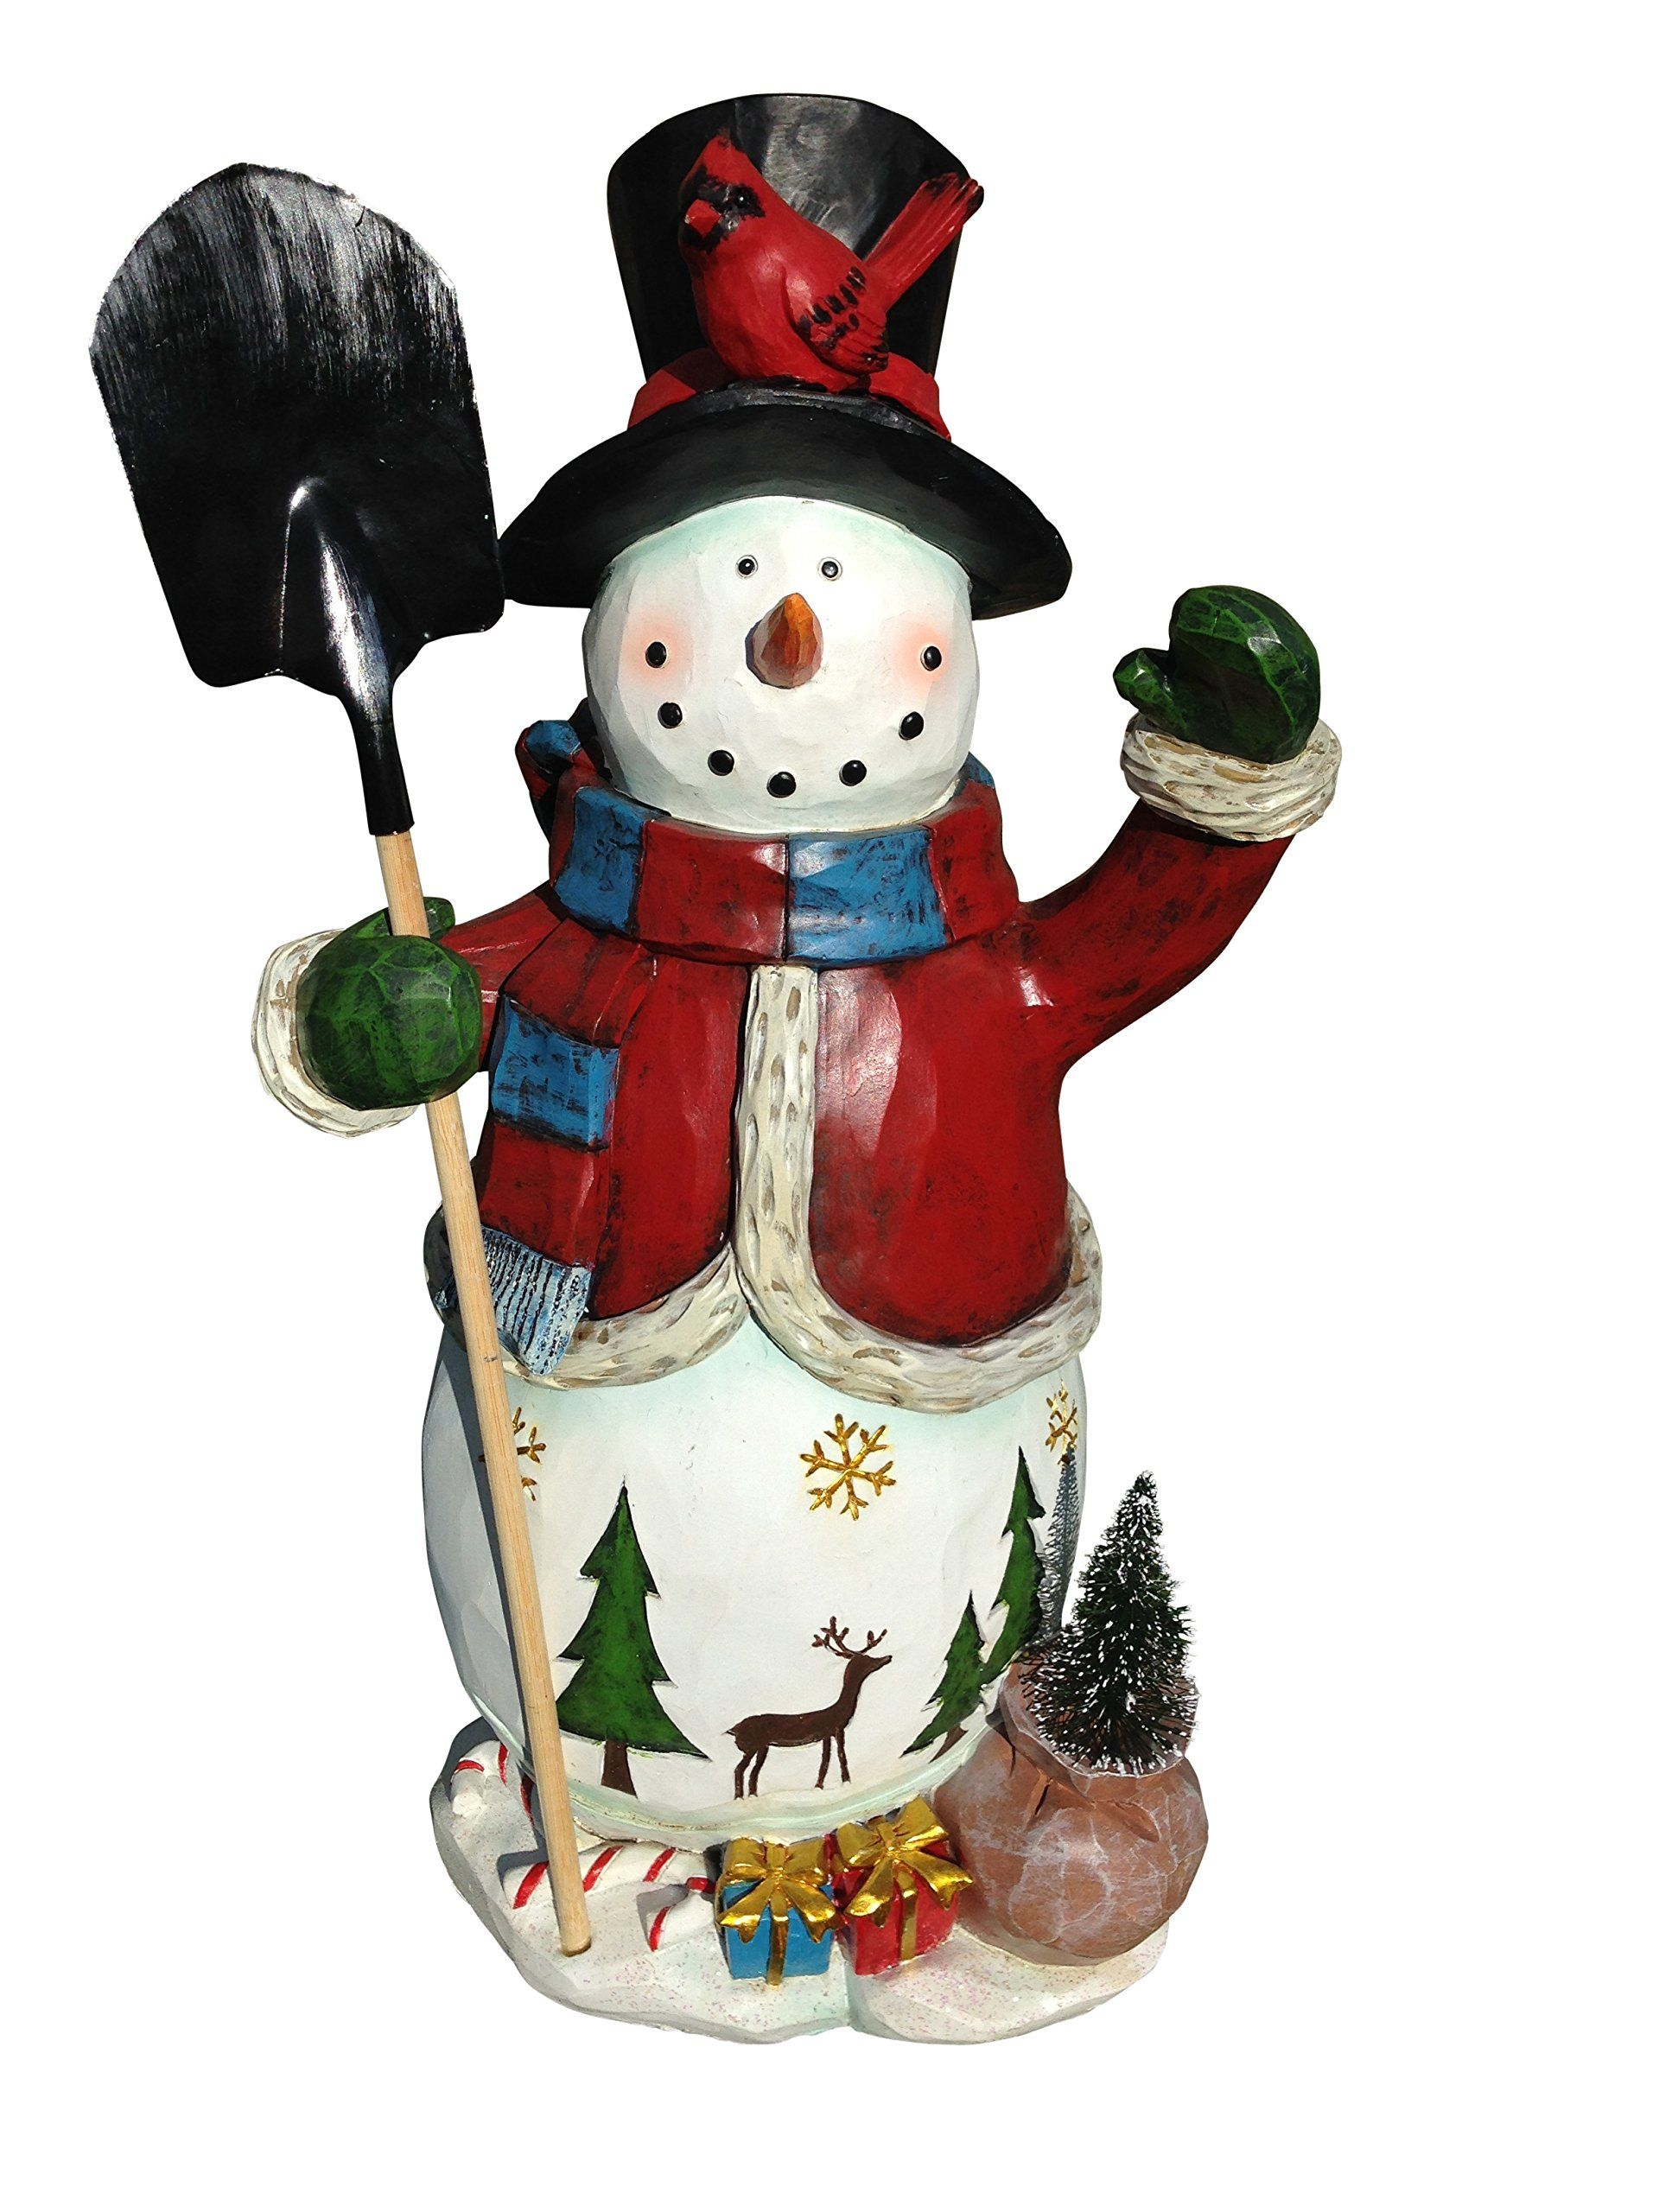 Festive Snowman Holiday Sculpture 20 Tall Poly Resin Christmas Snowman A Festive And Whimsical H Holiday Snowmen Hand Painted Decor Holiday Decor Christmas